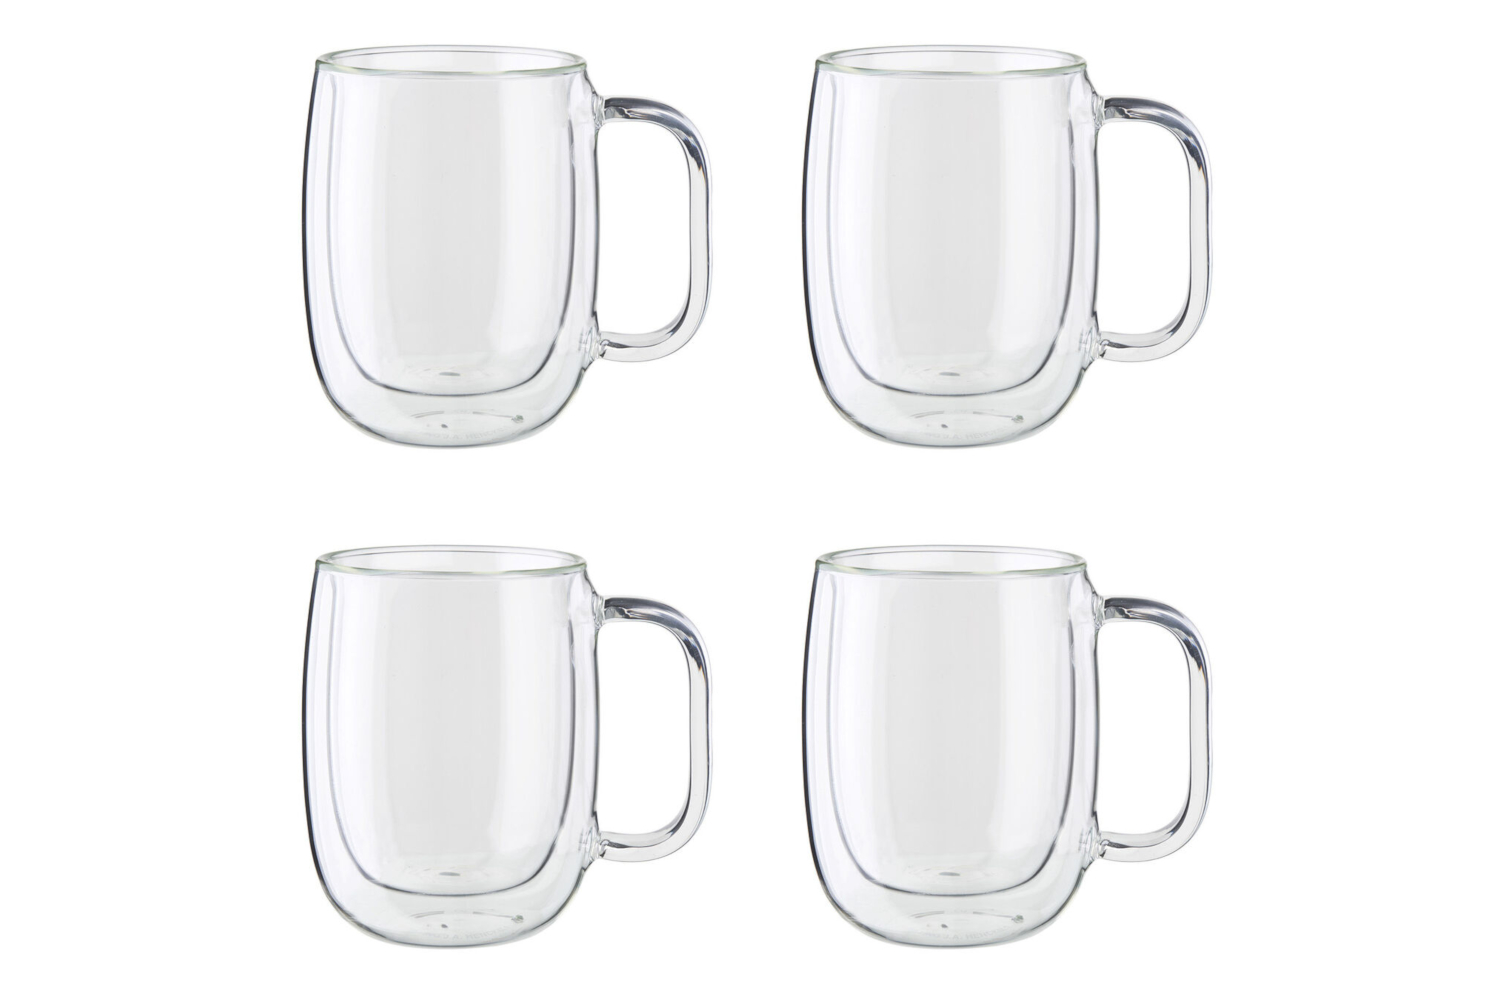 Zwilling Sorrento Plus Double Wall Coffee Cup Set - 12 oz